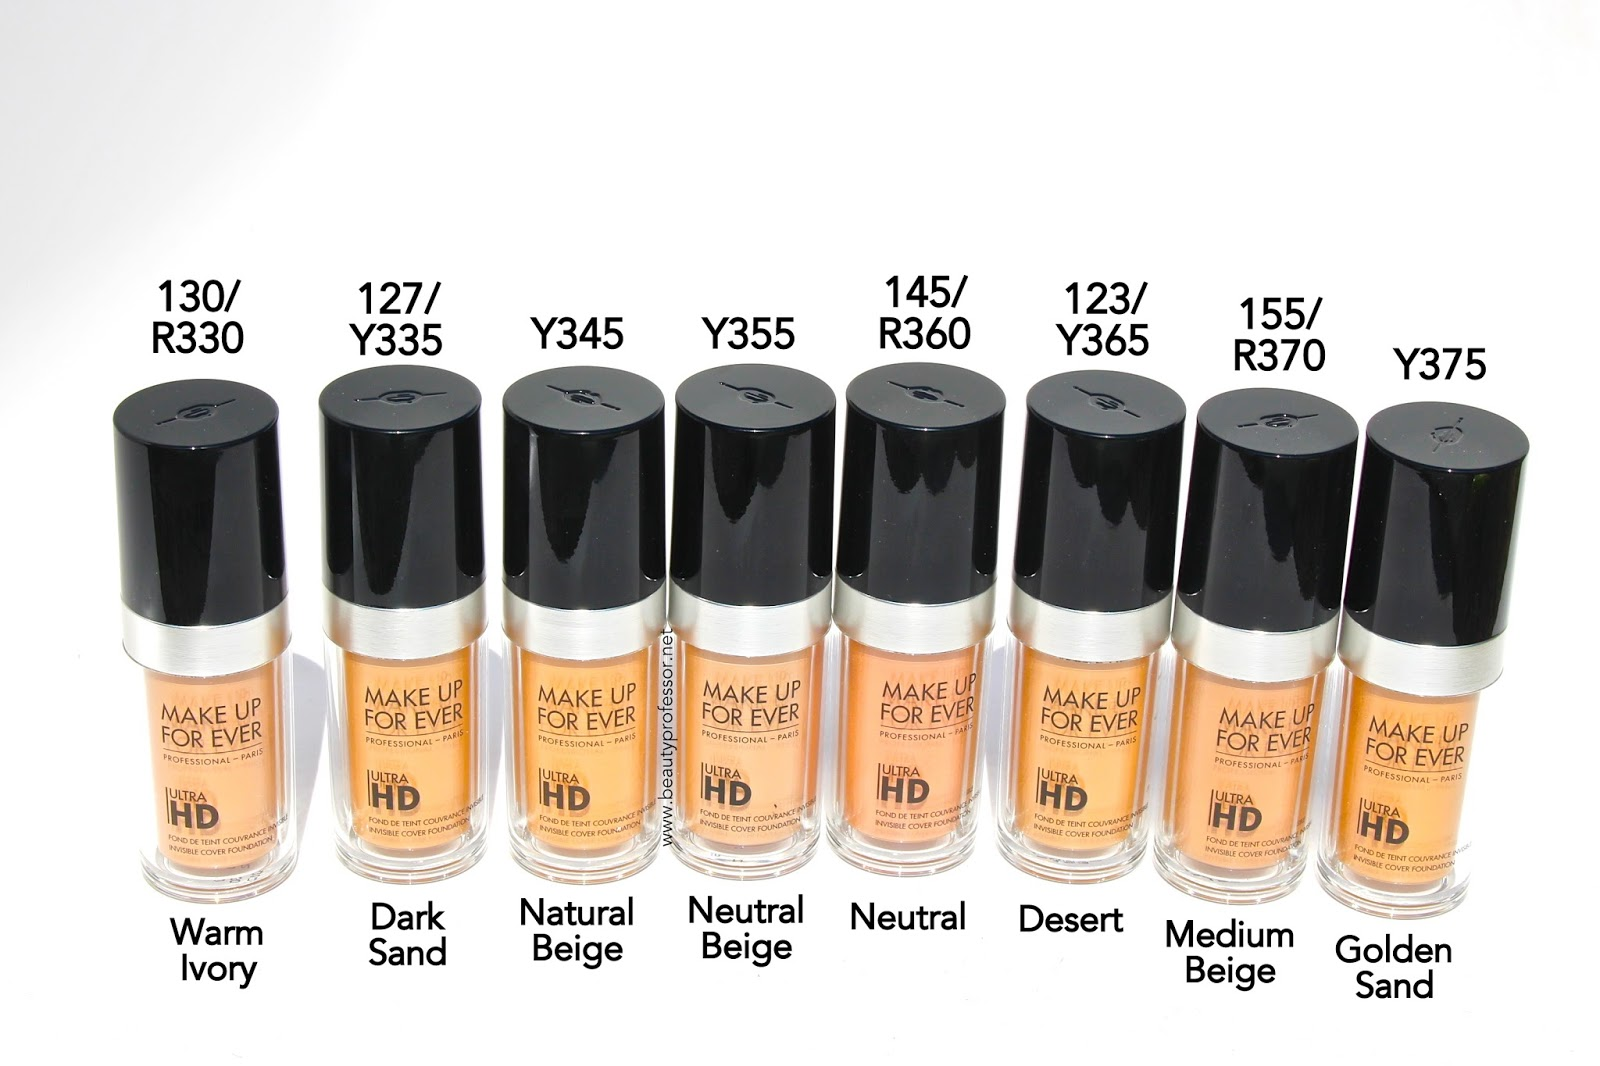 makeup forever hd foundation 123 desert decorativestyleorg